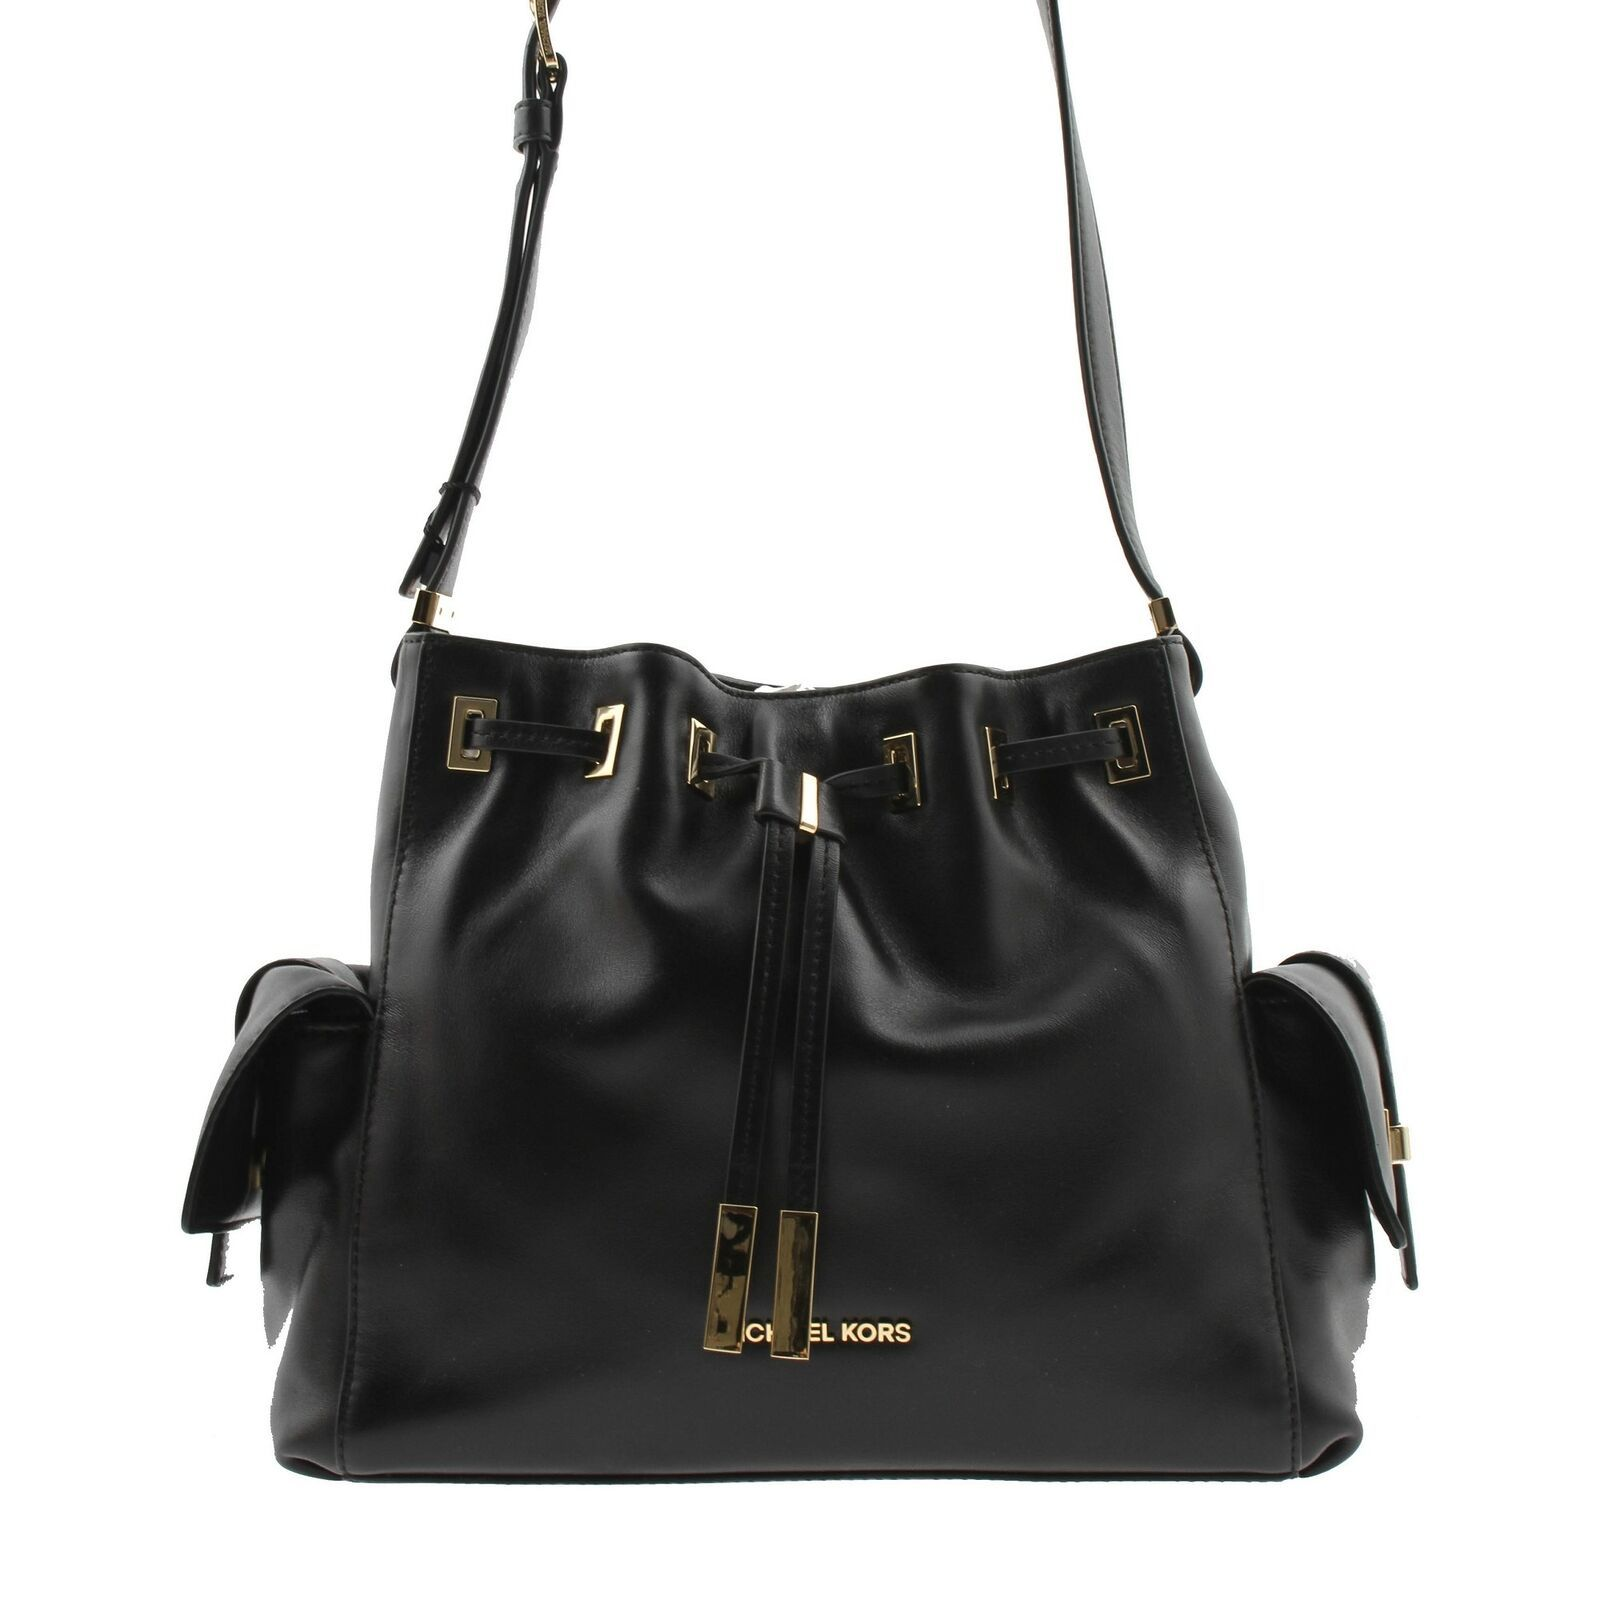 8eb221f1682f NWT Authentic Michael Kors Marly Medium Drawstring Black Crossbody  30T5GYMM2L - $277.20